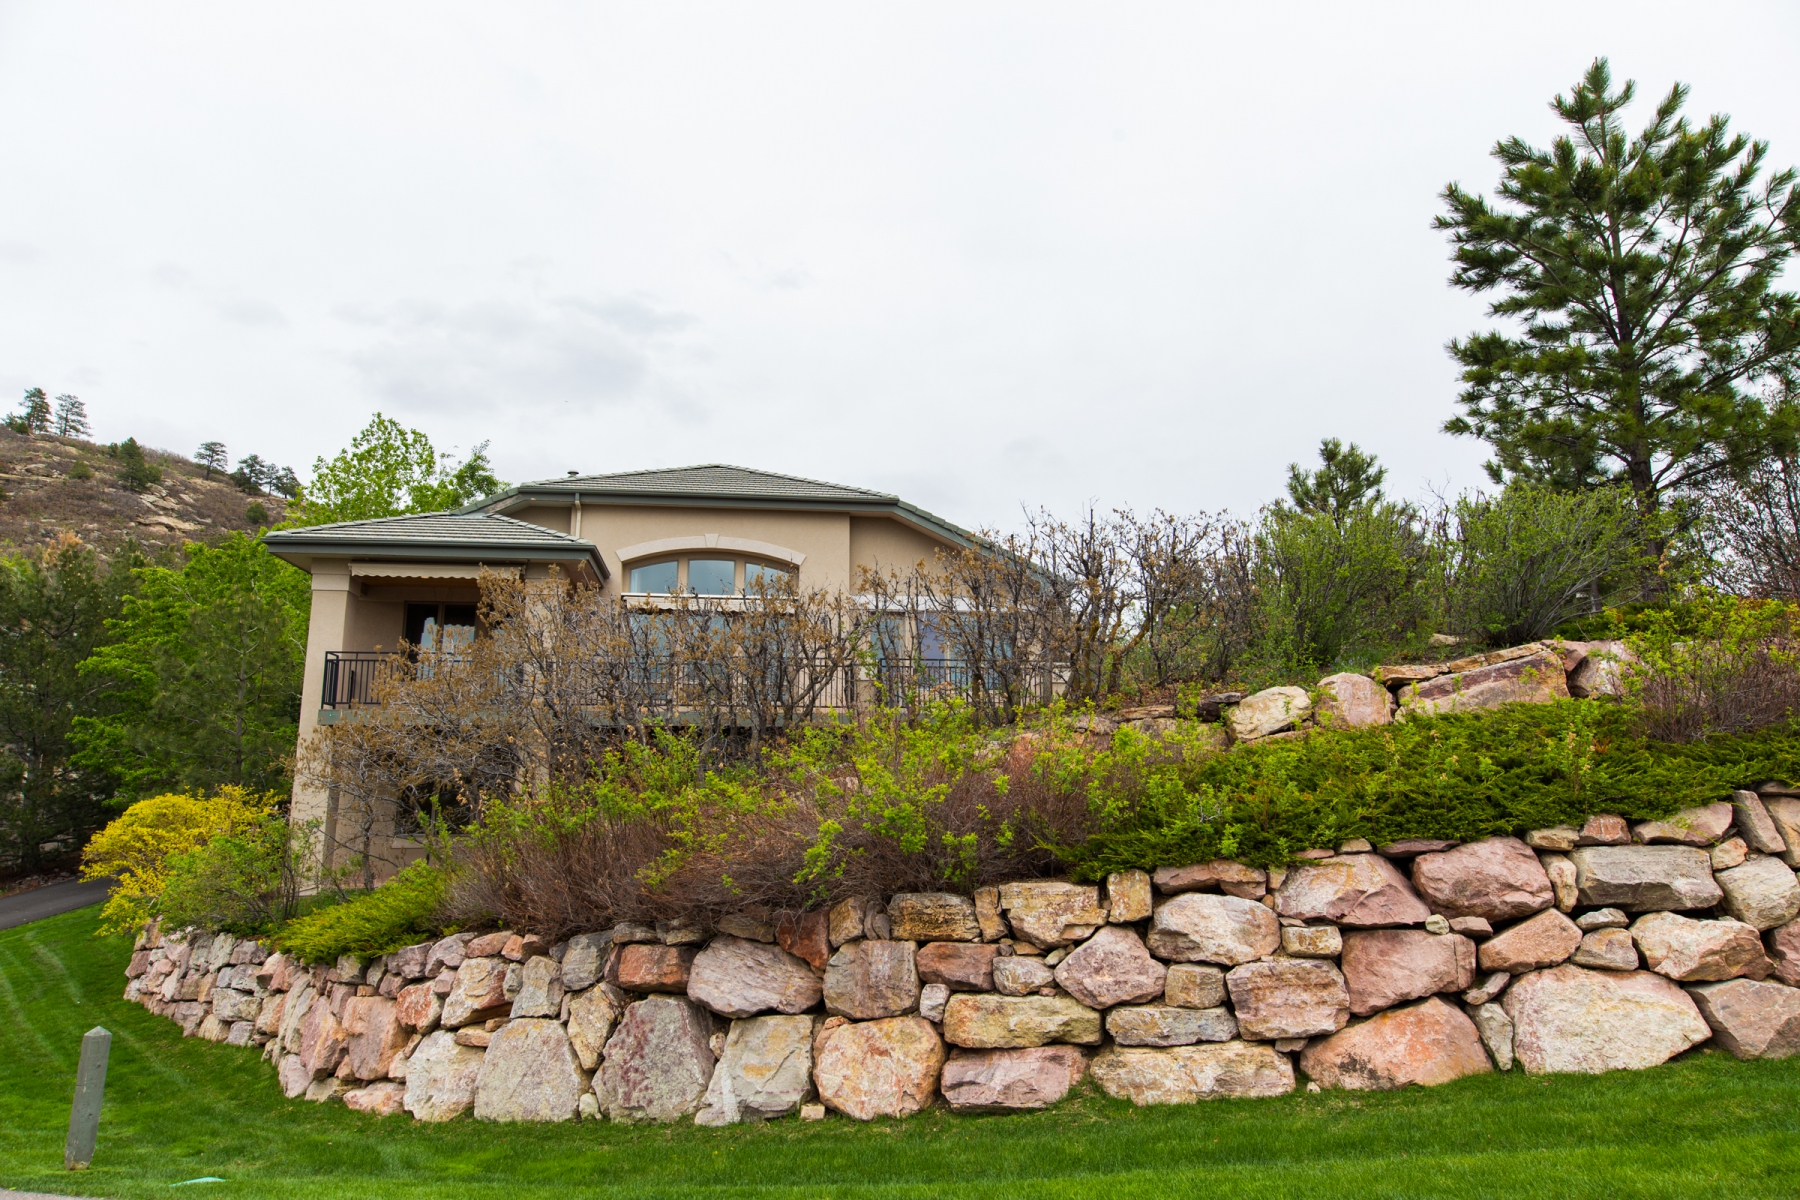 Single Family Home for Sale at 2903 Fairway View Ct Castle Pines Village, Castle Rock, Colorado 80108 United States